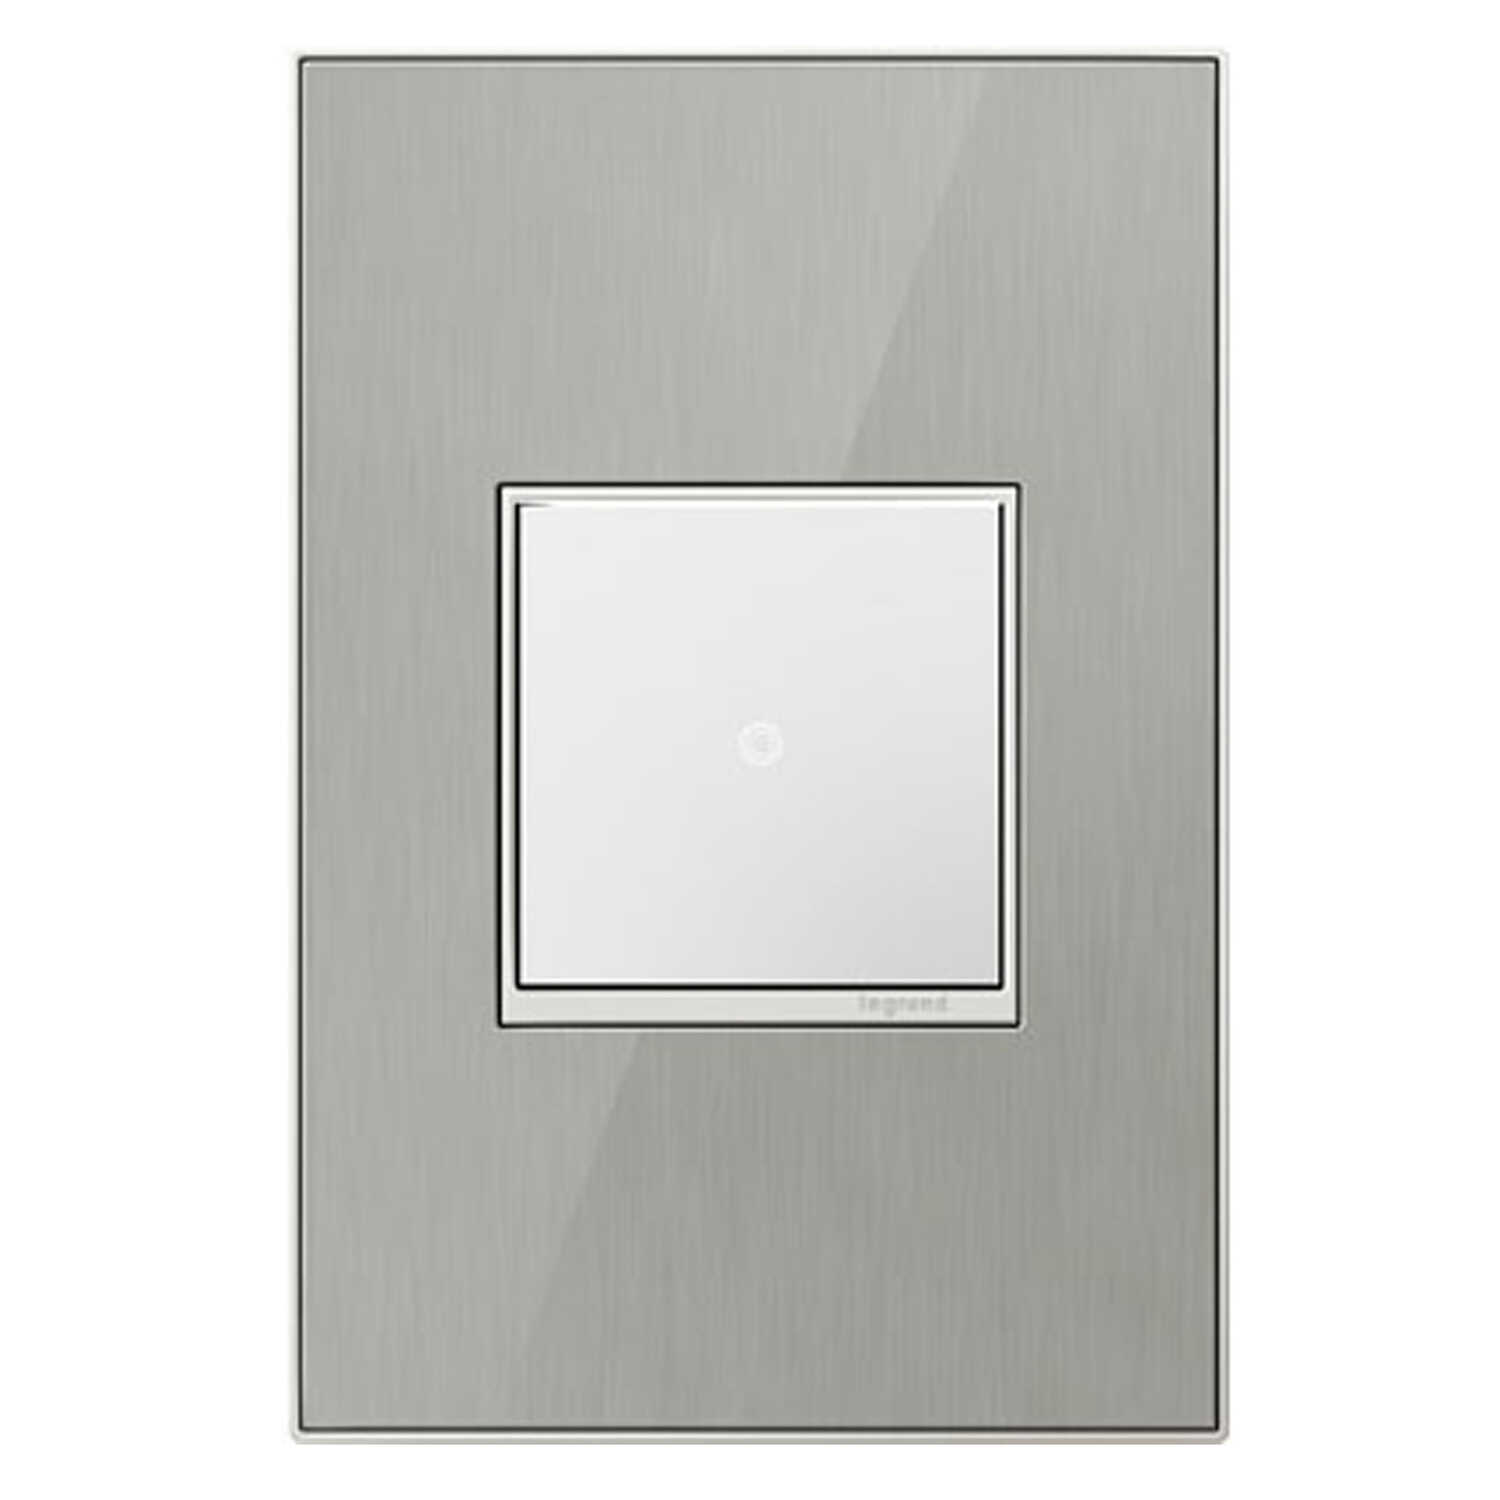 Legrand  Adorne  Metallic  1 gang Thermoplastic Nylon  GFCI/Rocker  Wall Plate  1 pk